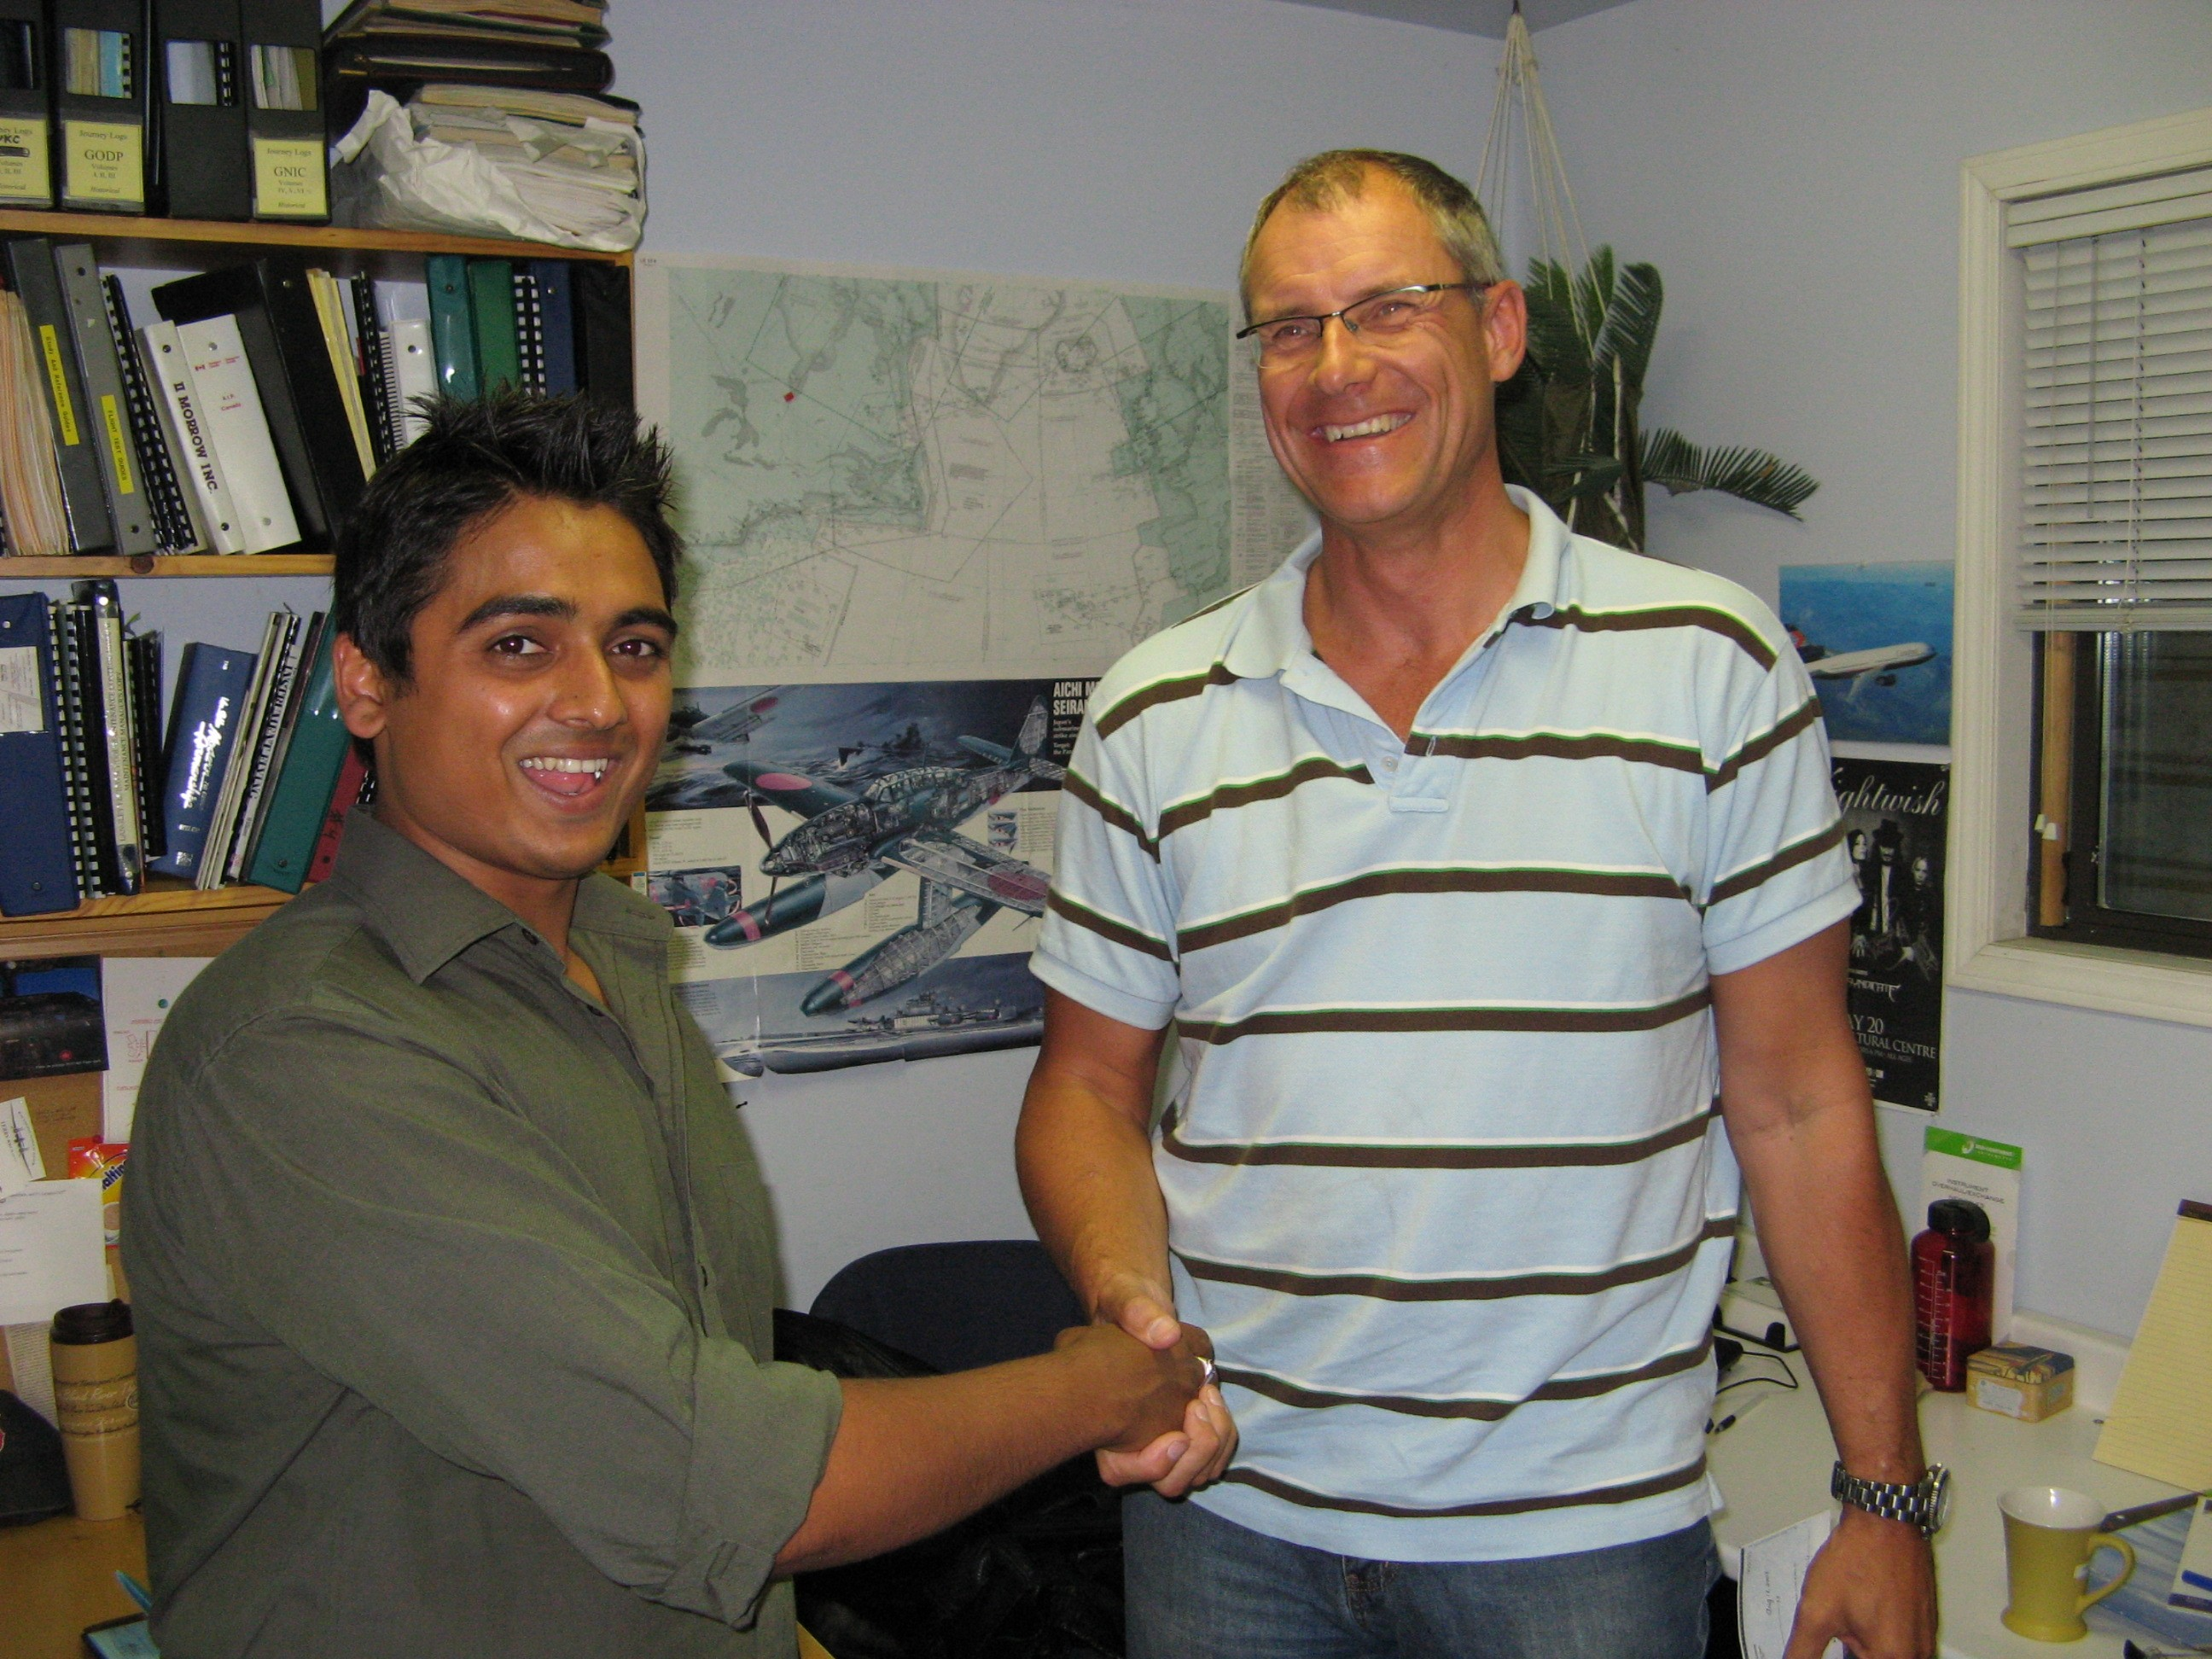 Commercial Pilot Nikhil Dongare with Pilot Examiner Matt Edwards after the successful completion of his Group 1 (Multi-engine) Instrument Rating on August 12, 2008.  Langley Flying School.